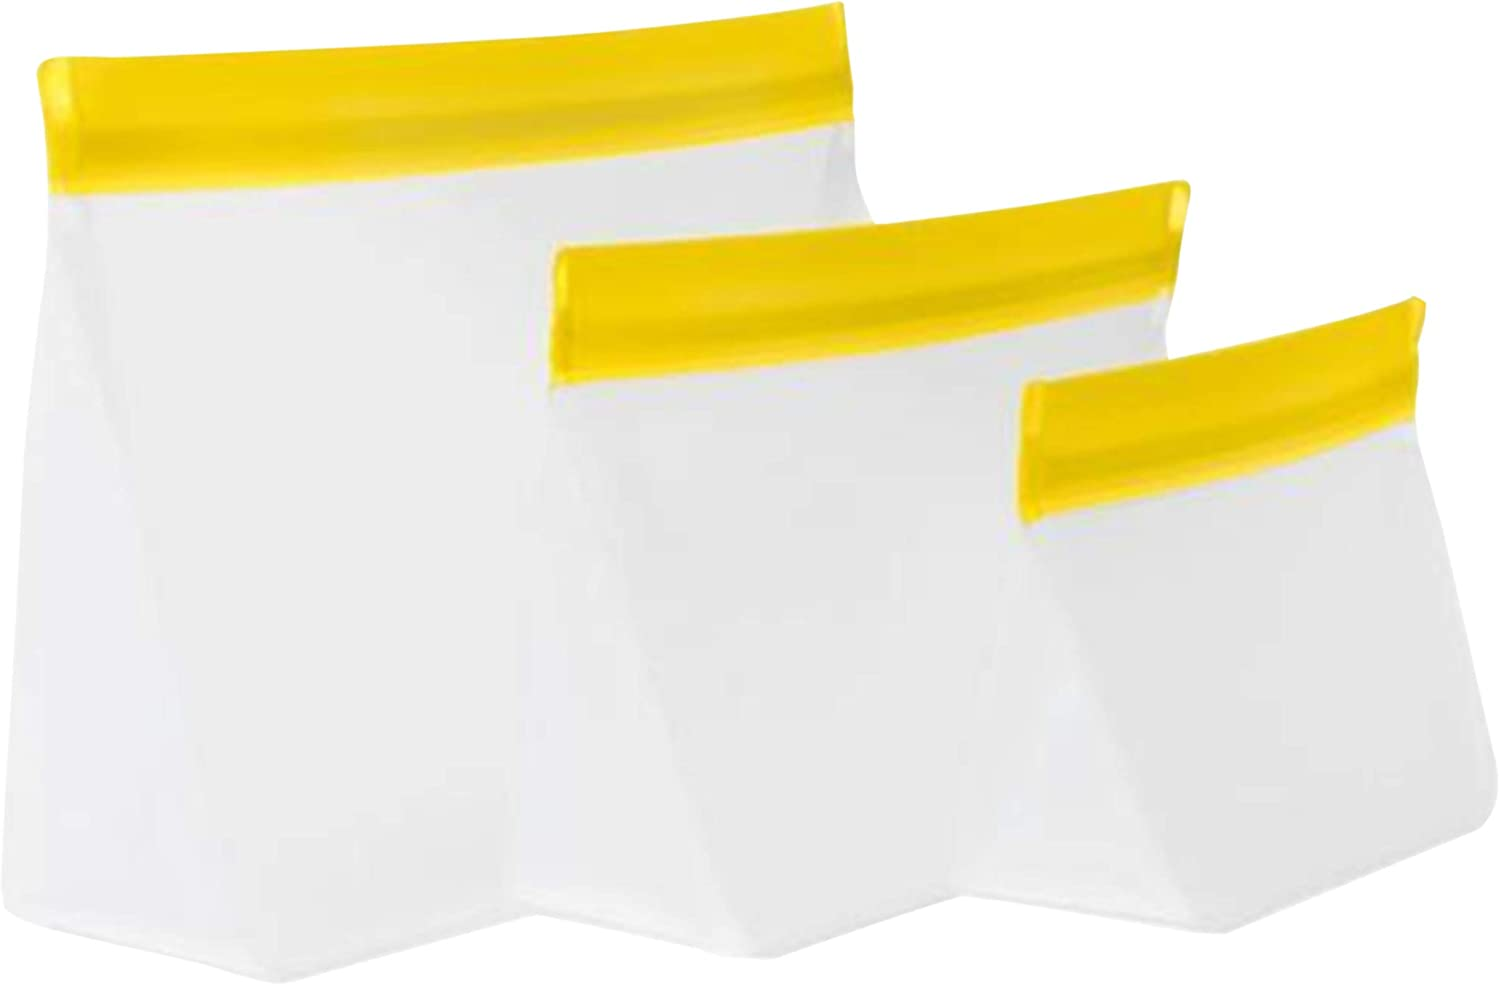 mumi Reusable Zip Up Bags | Food Storage Bags, Travel Organizer | Airtight and Leak-proof Seal | Expandable Base | Set of 3 Reusable Bags (10 x 7, 8 x 5, 6 x 4 inches) (Yellow)